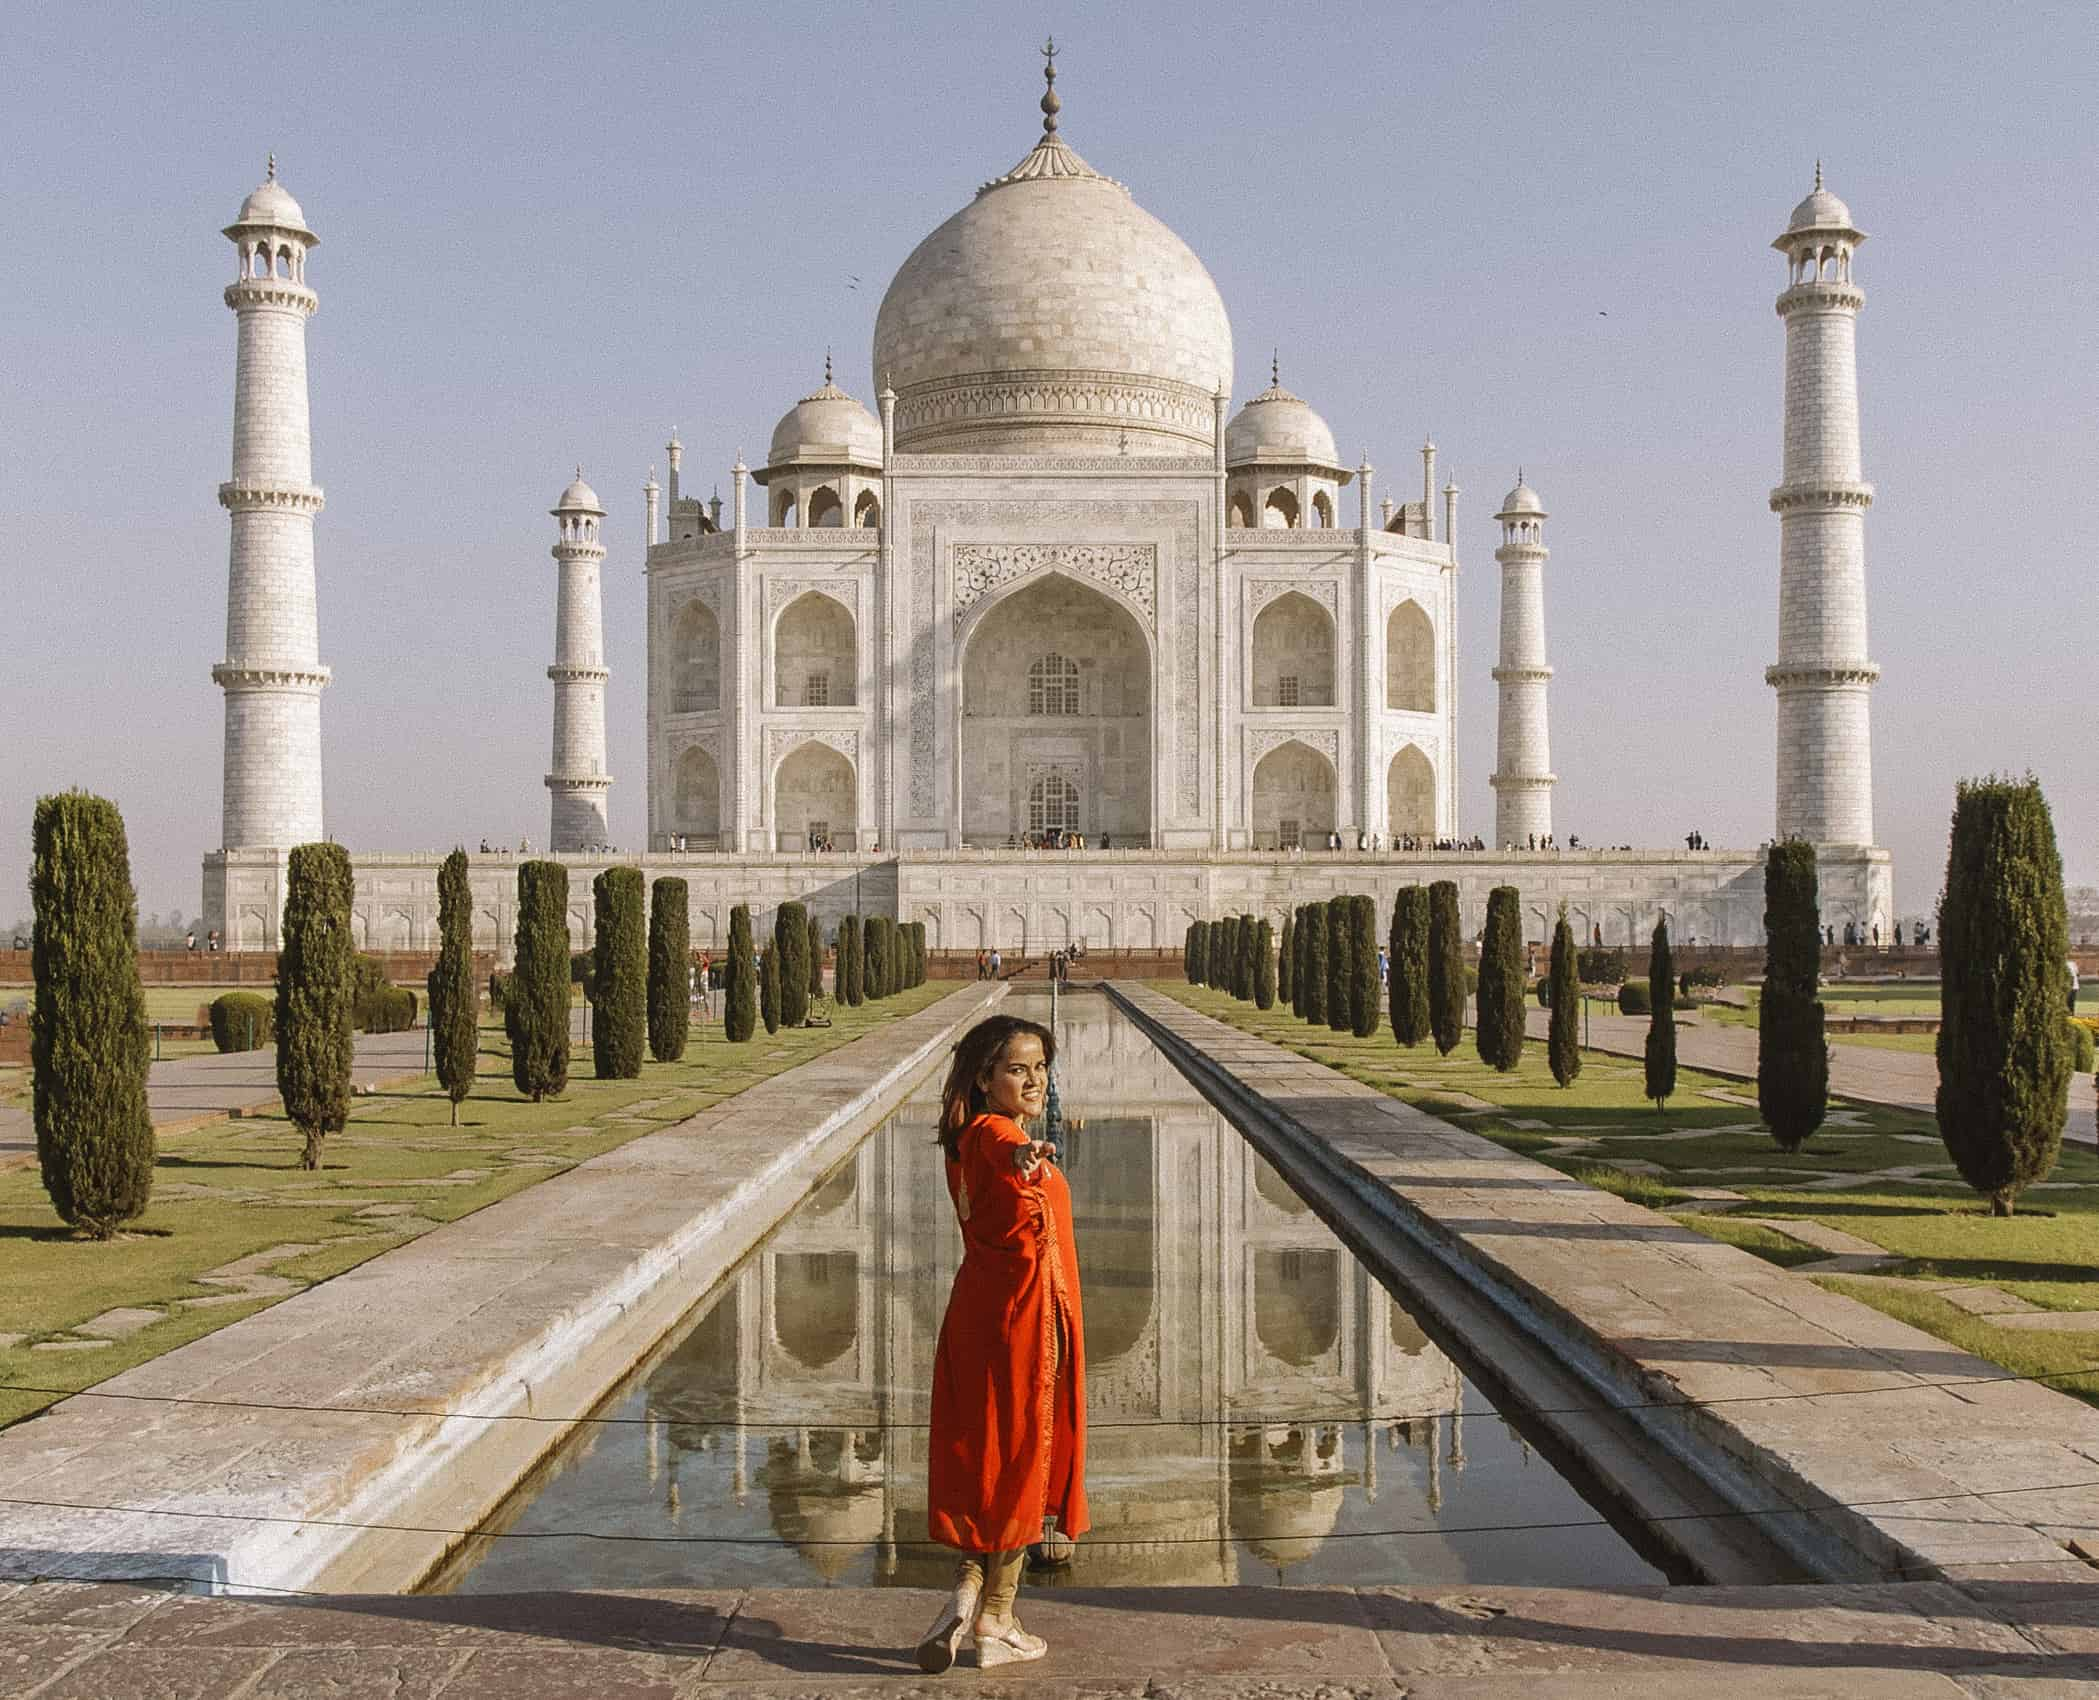 Visiting the Taj Mahal in India: Best Tips for seeing 1 of